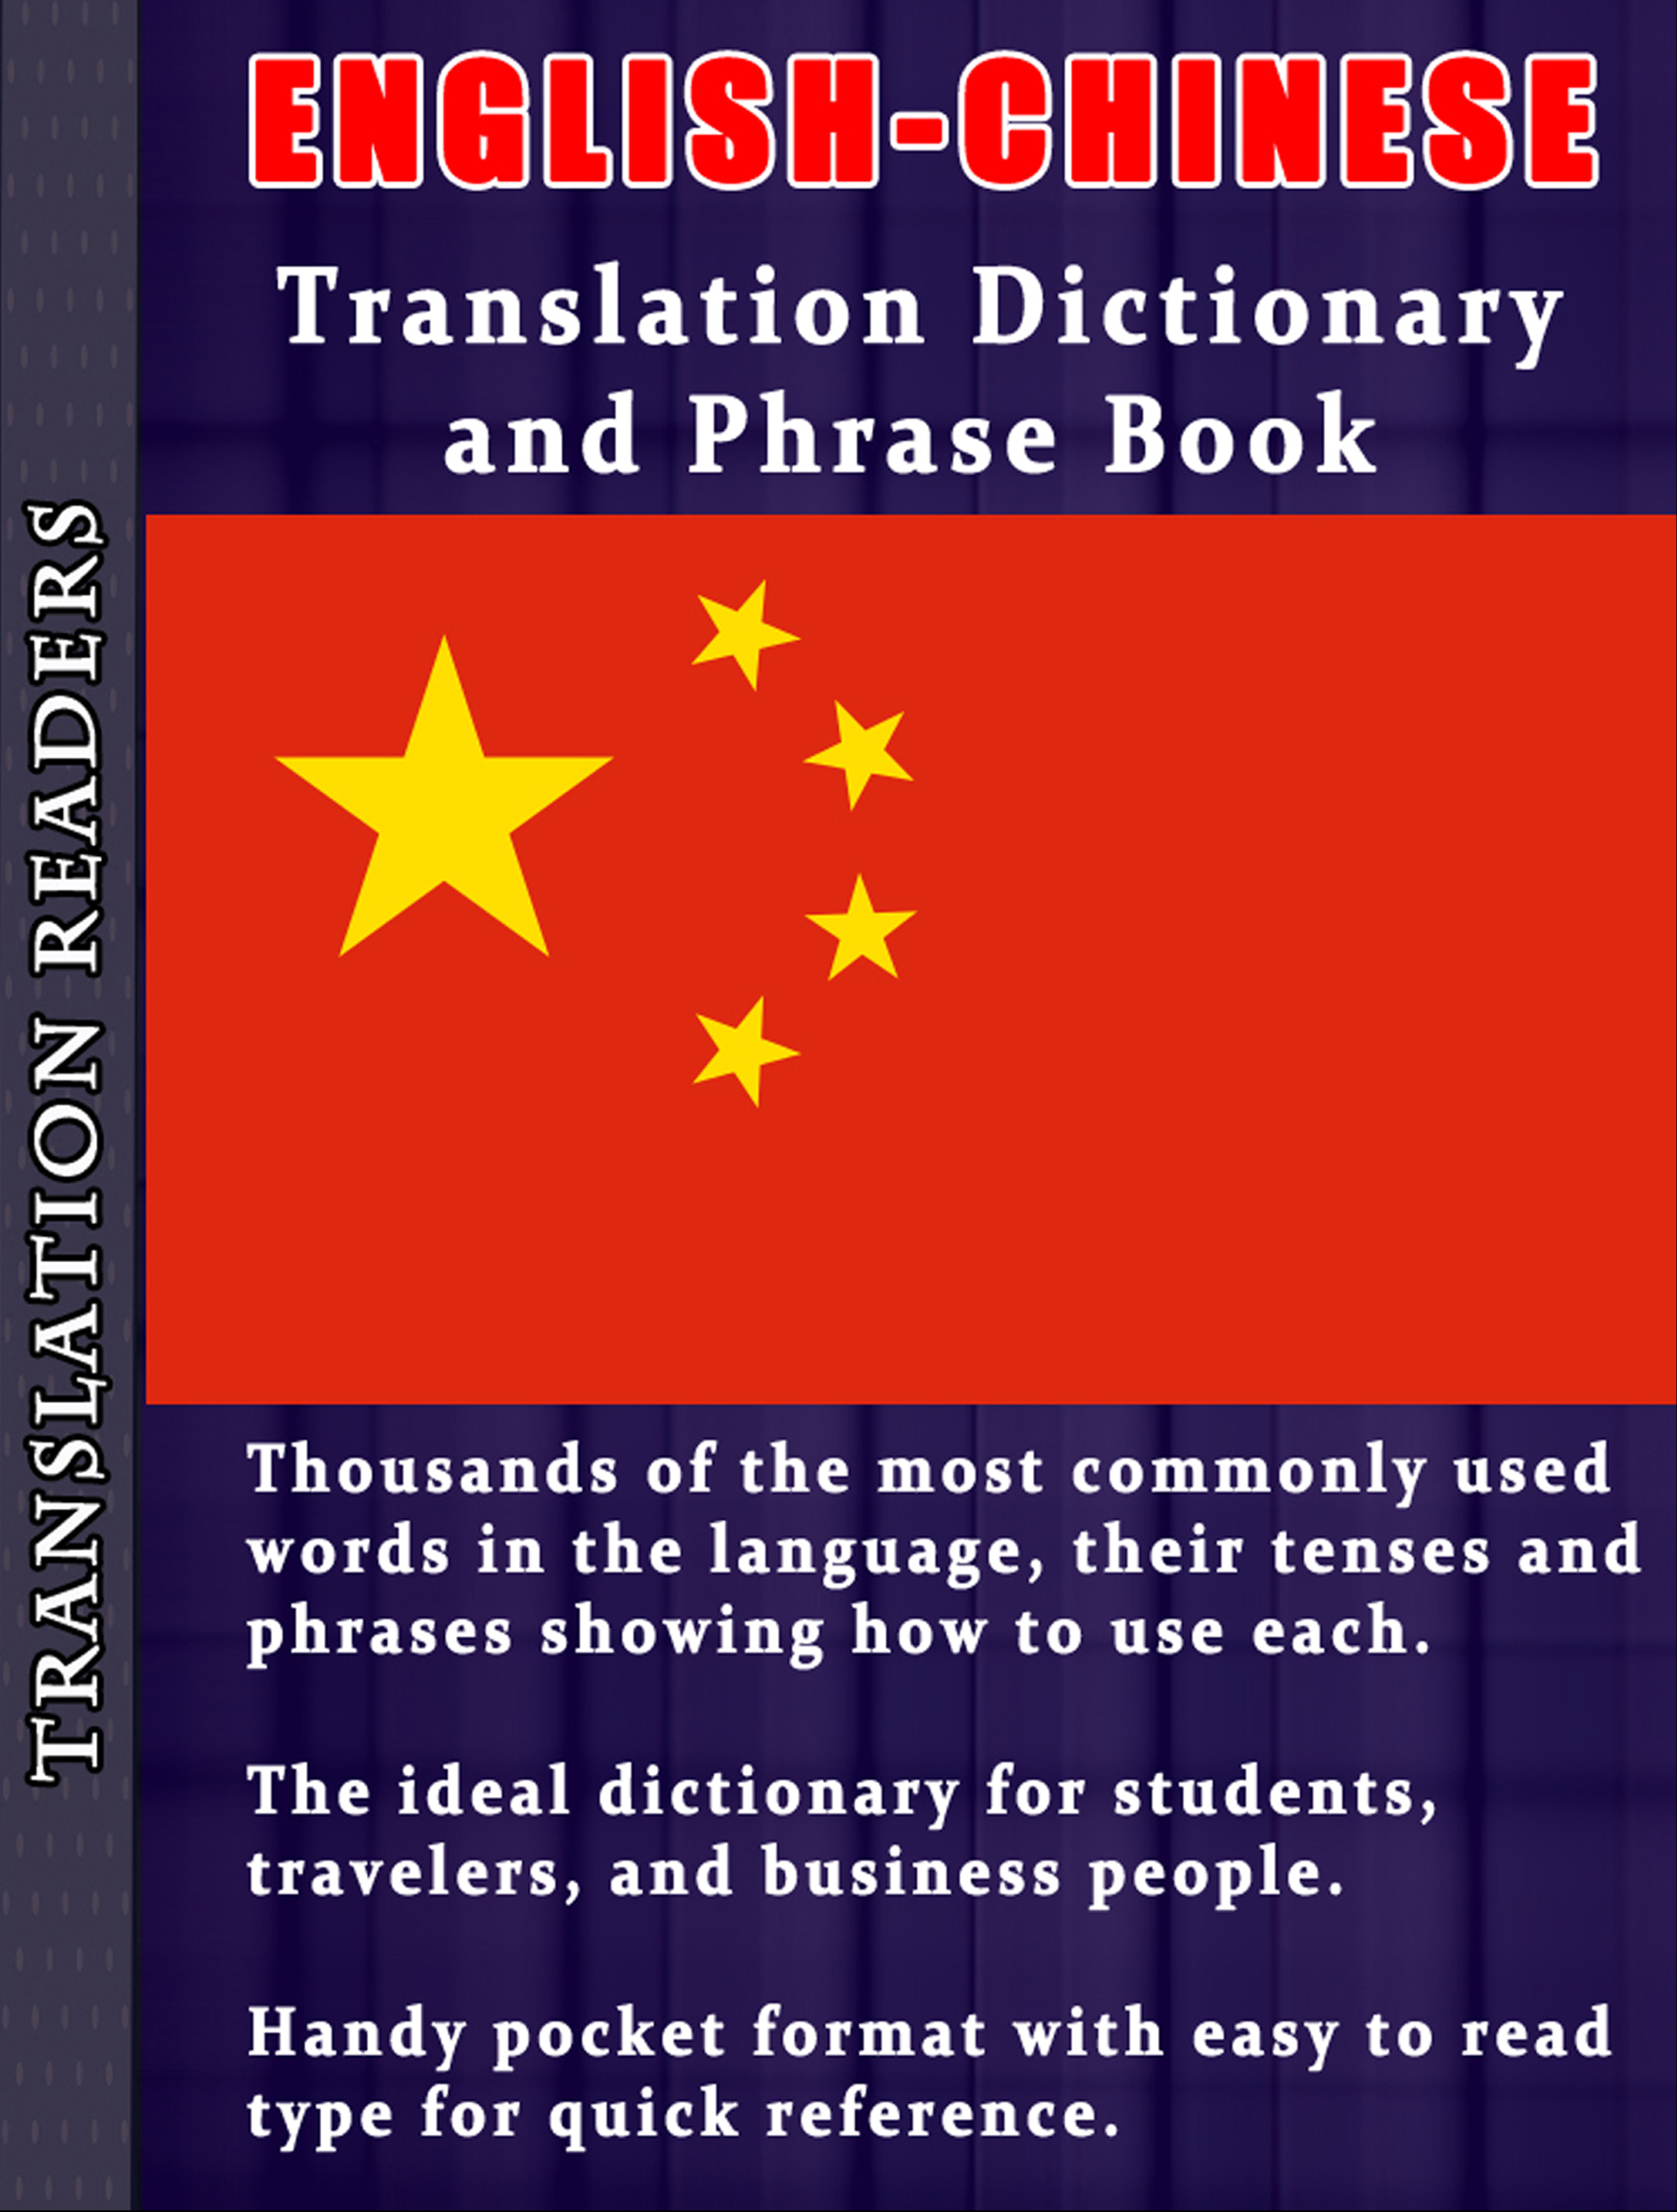 English - Chinese Translation Dictionary and Phrase Book: Complete with  Tenses and Sample Sentences, an Ebook by booksforenjoyment